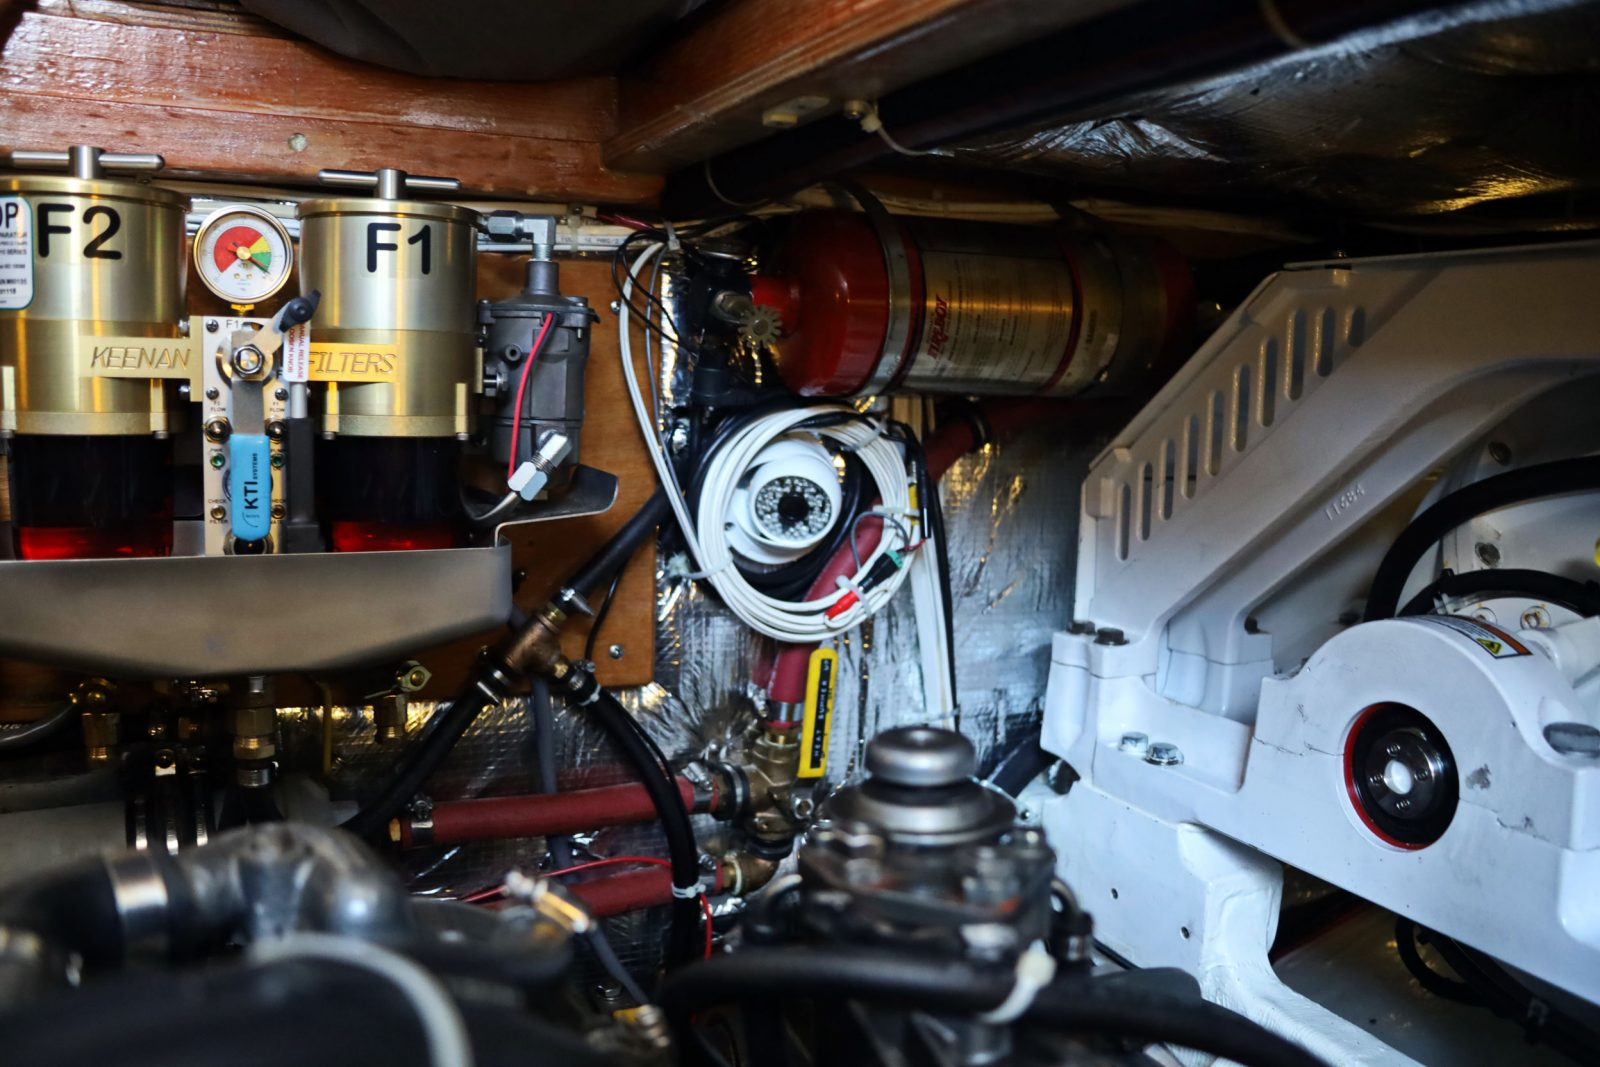 Bliss engine room detail in early July 2019